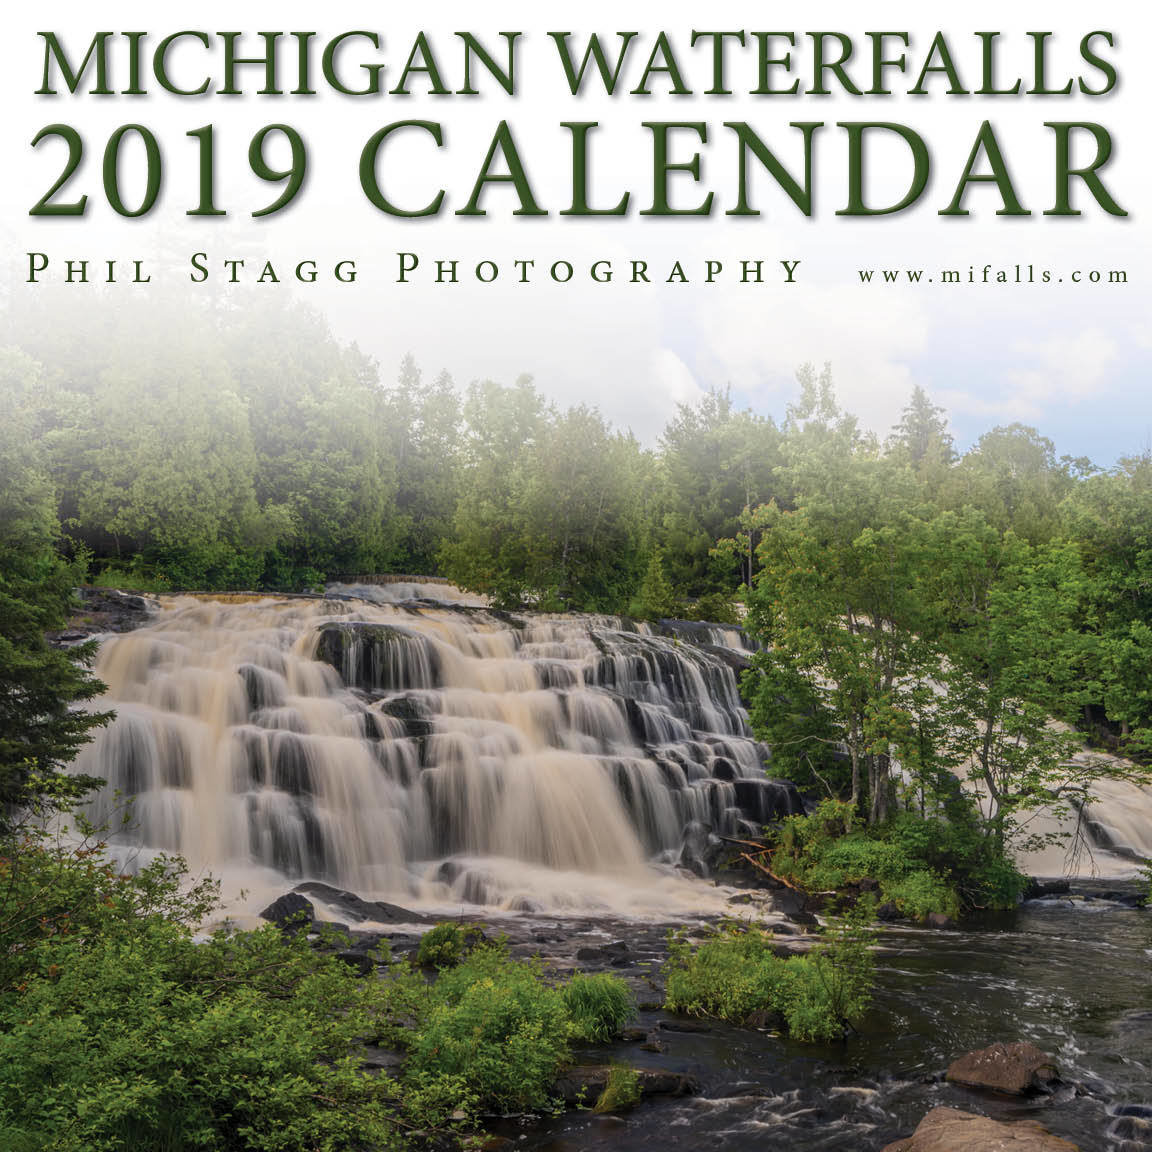 2019 Michigan Waterfall Calendar